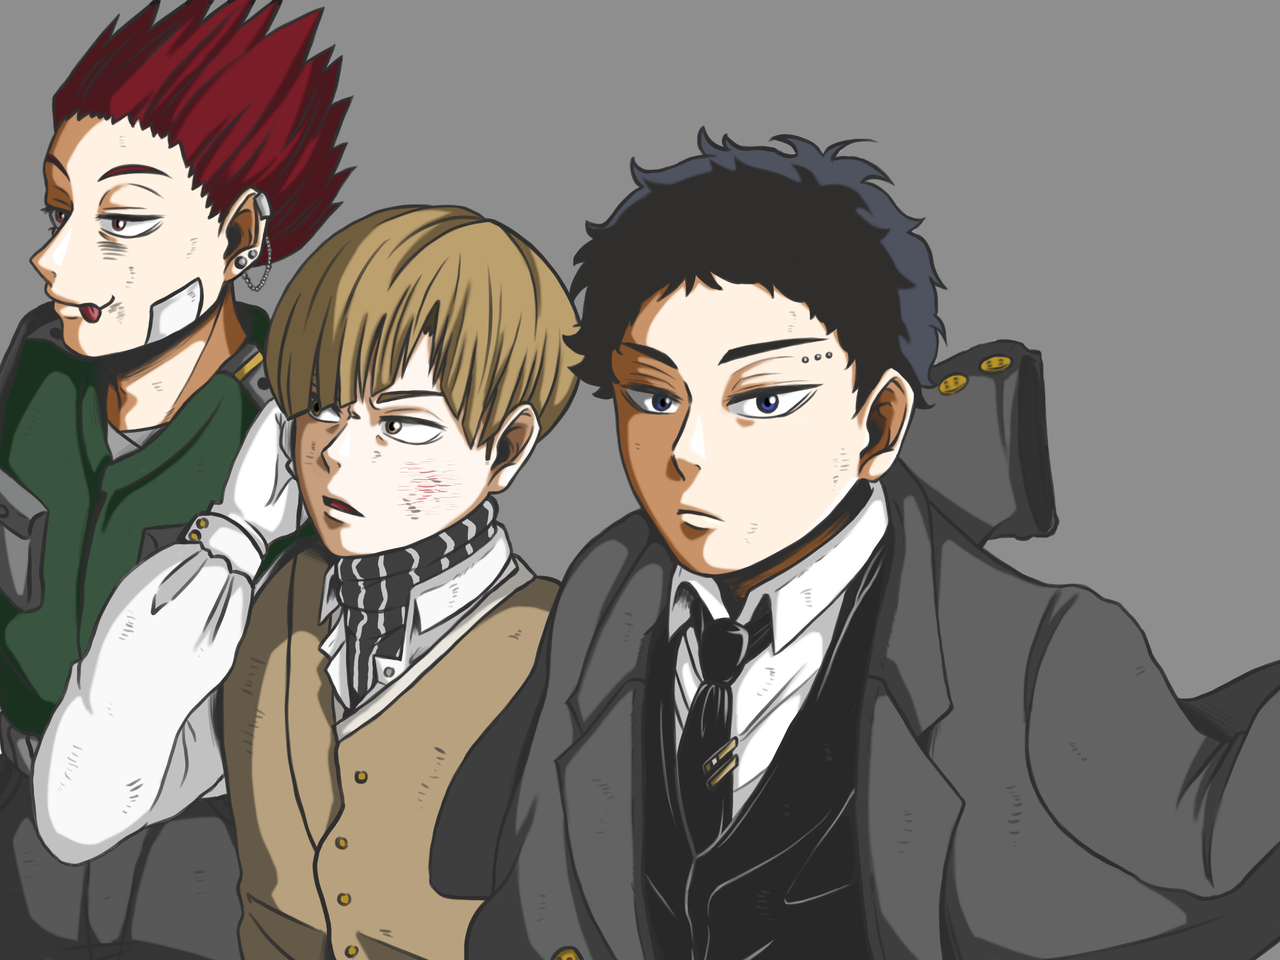 [HQ] Who is your favorite? 🔨